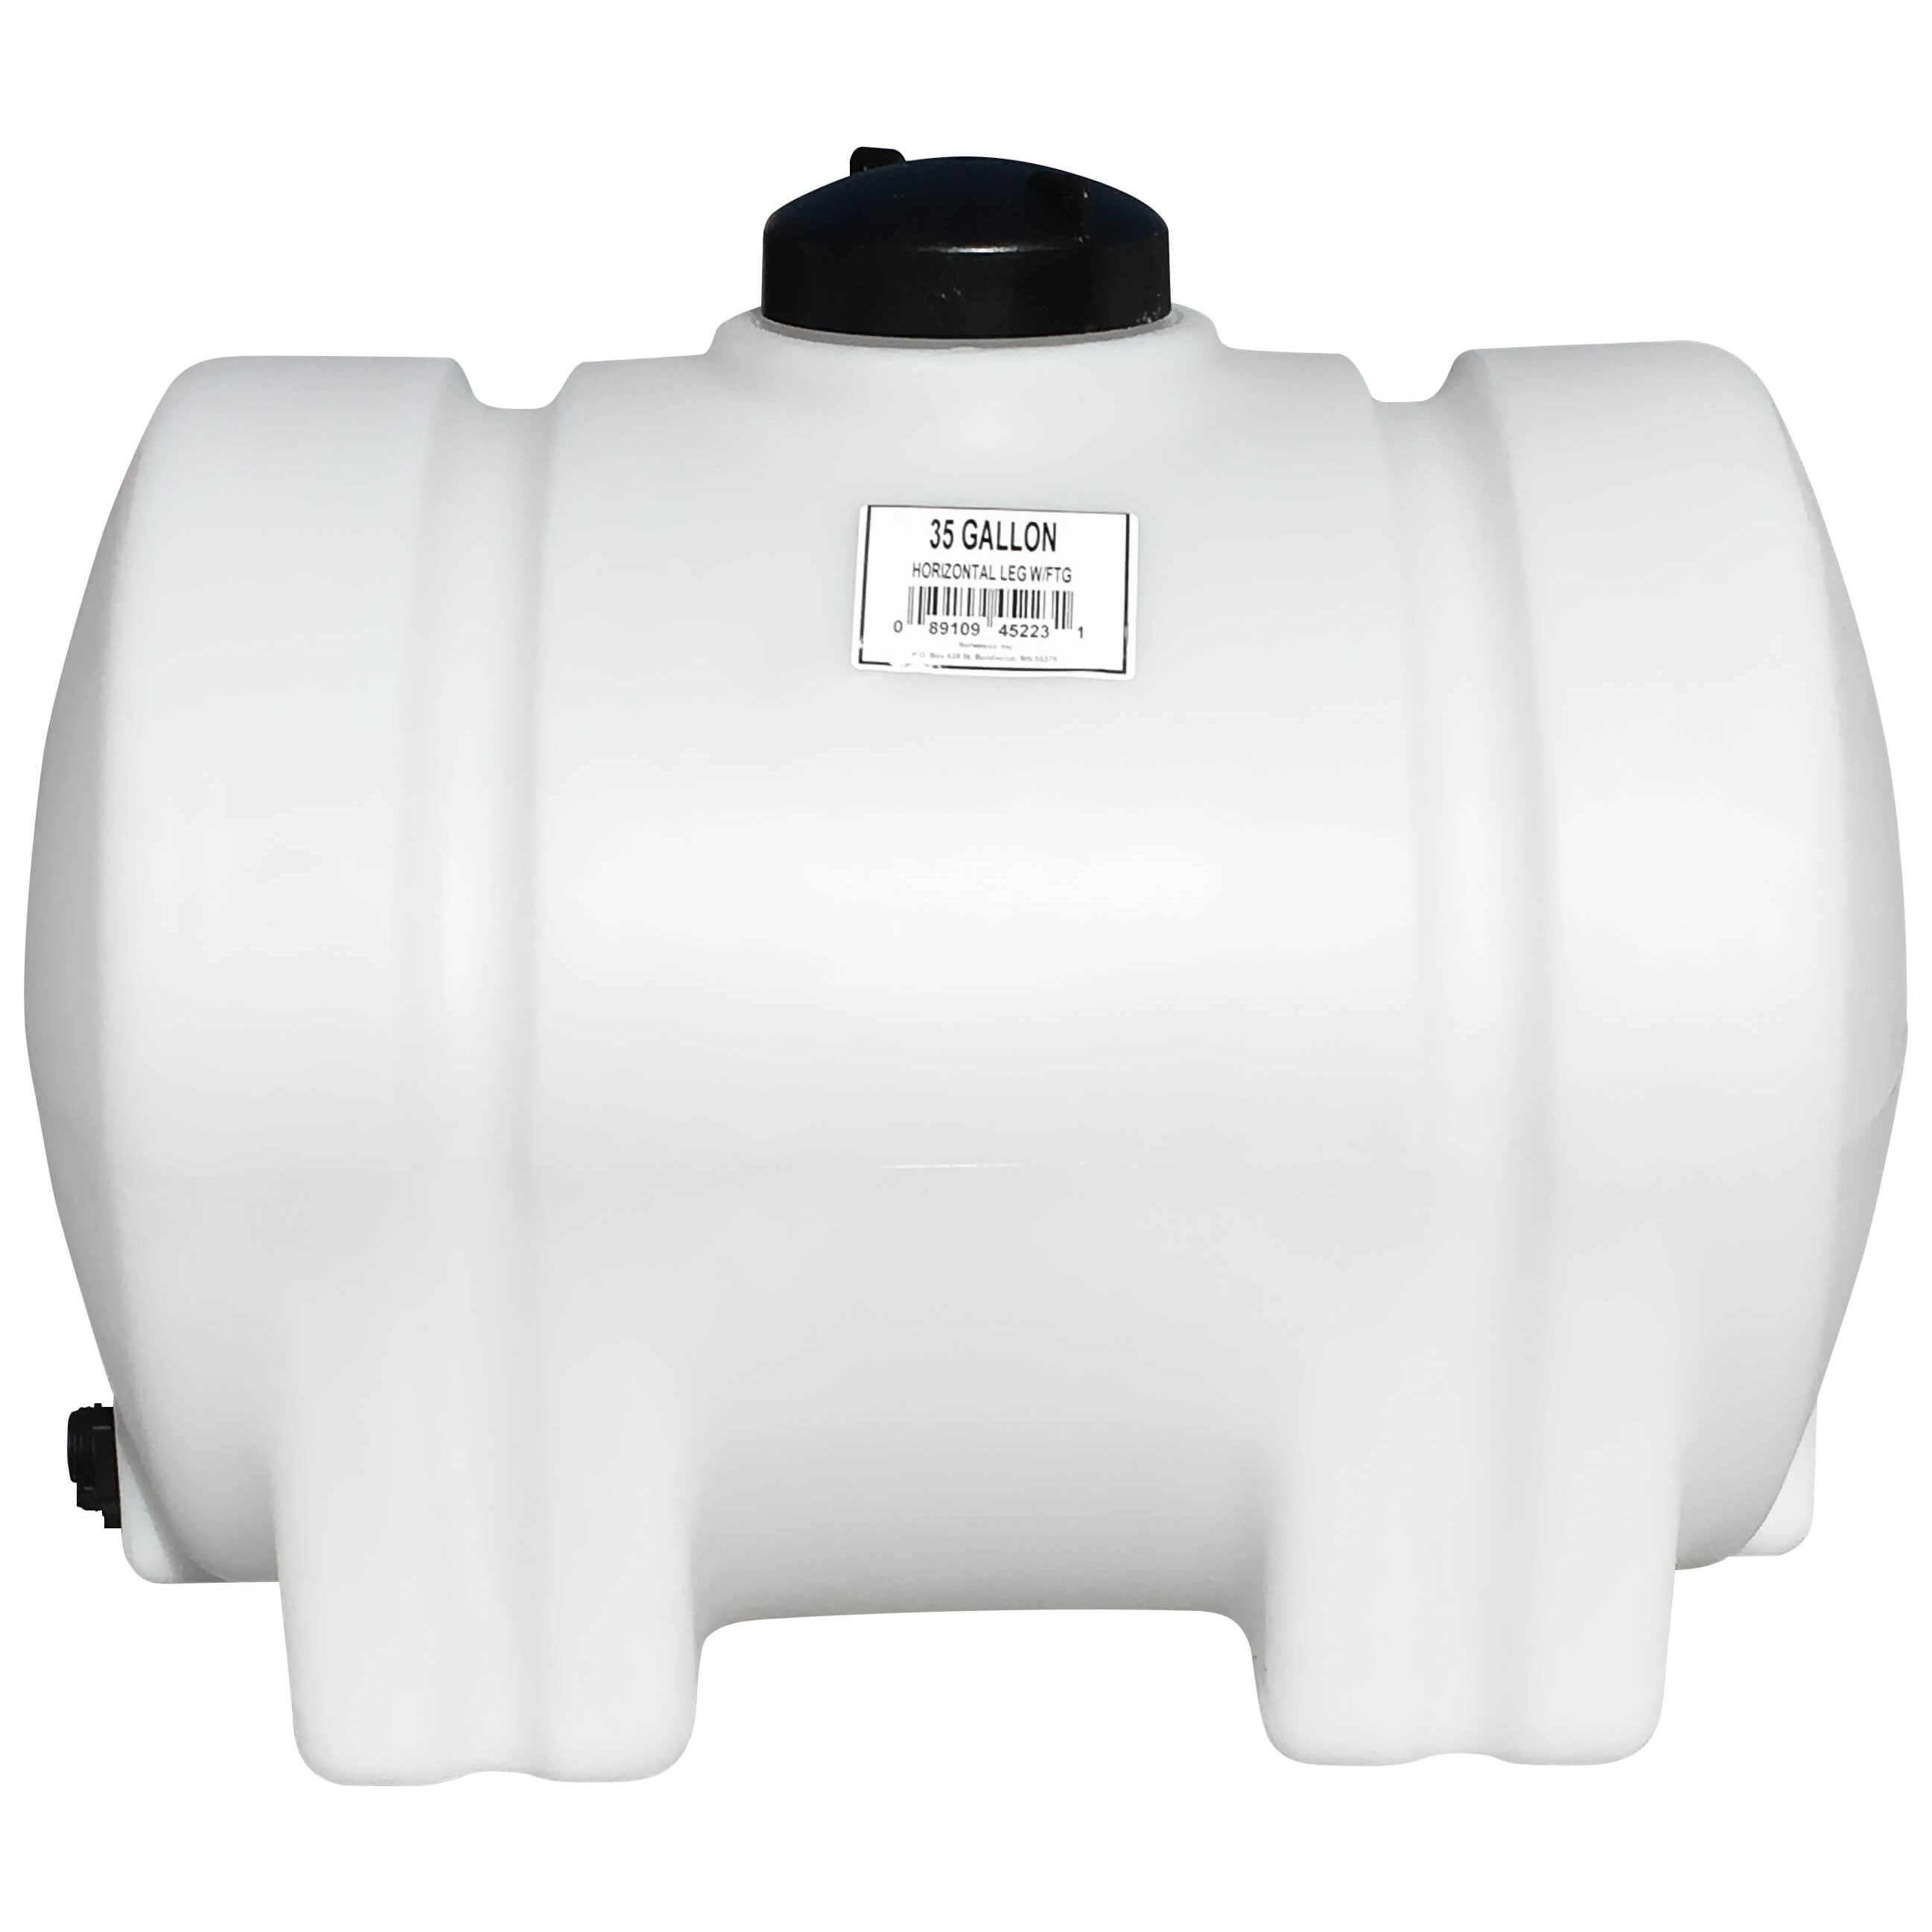 gallon white horizontal leg tank norwesco  35 gallon white horizontal leg tank 35 gallon white horizontal leg tank